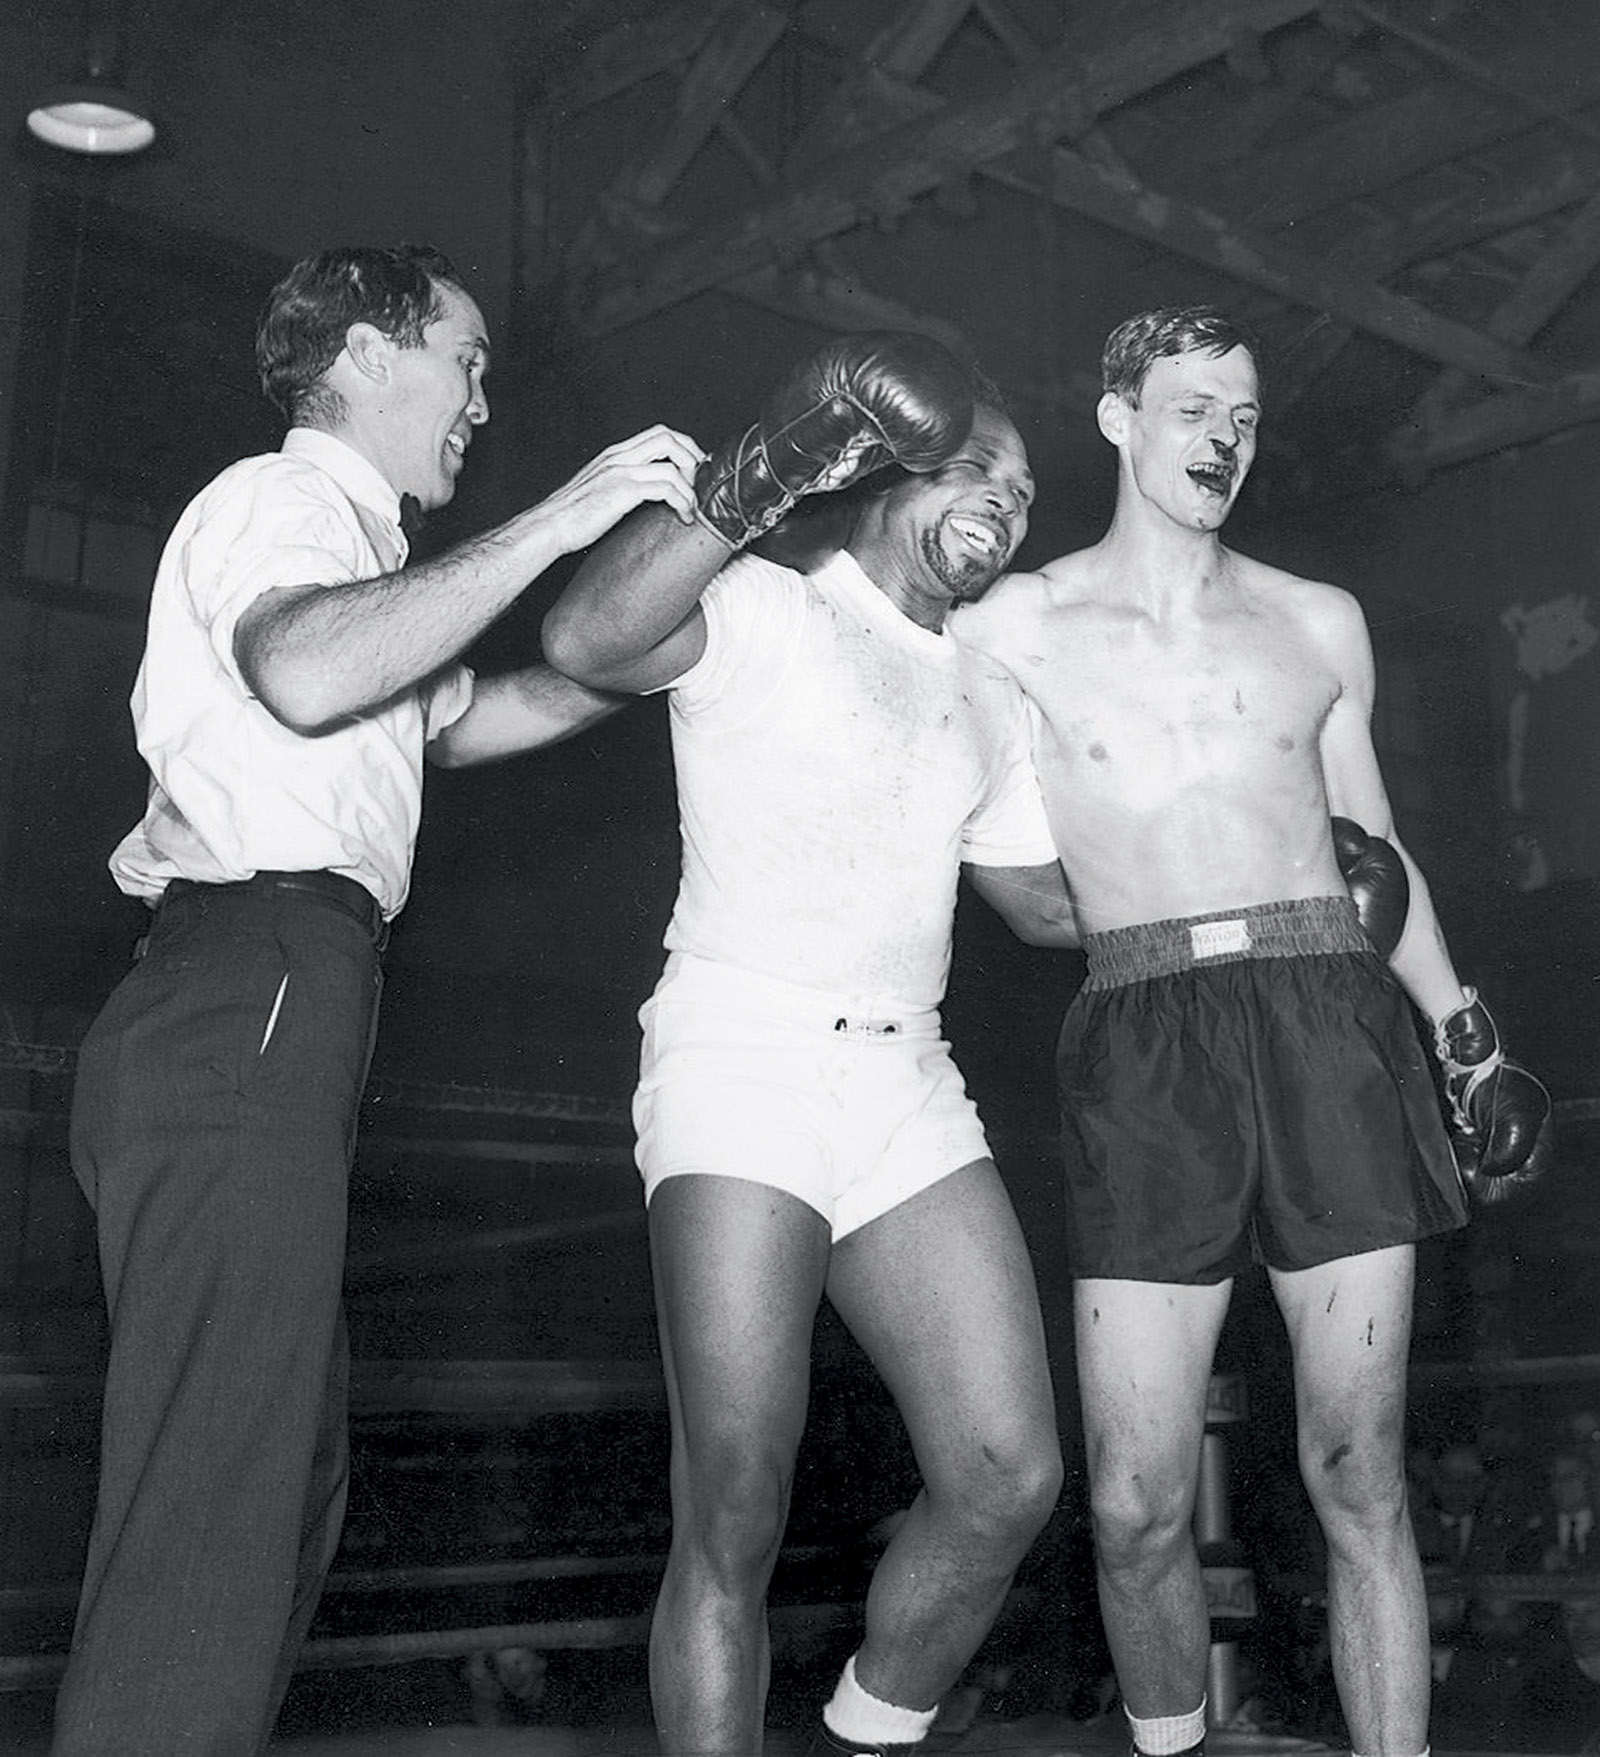 """George Plimpton, right, after a boxing match with Archie Moore at Stillman's Gym, New York City, 1959; Ezra Bowen, the Sports Illustrated editor who acted as referee, is at left. 'Quite visible are the effects Archie Moore left on the author's nose,' Plimpton writes in Shadow Box, 'what would have been described in the jaunty style of the mid-nineteenth century as follows: """"Archie dropped a hut'un on George's sneezer which shook his ivories and turned the tap on.""""'"""